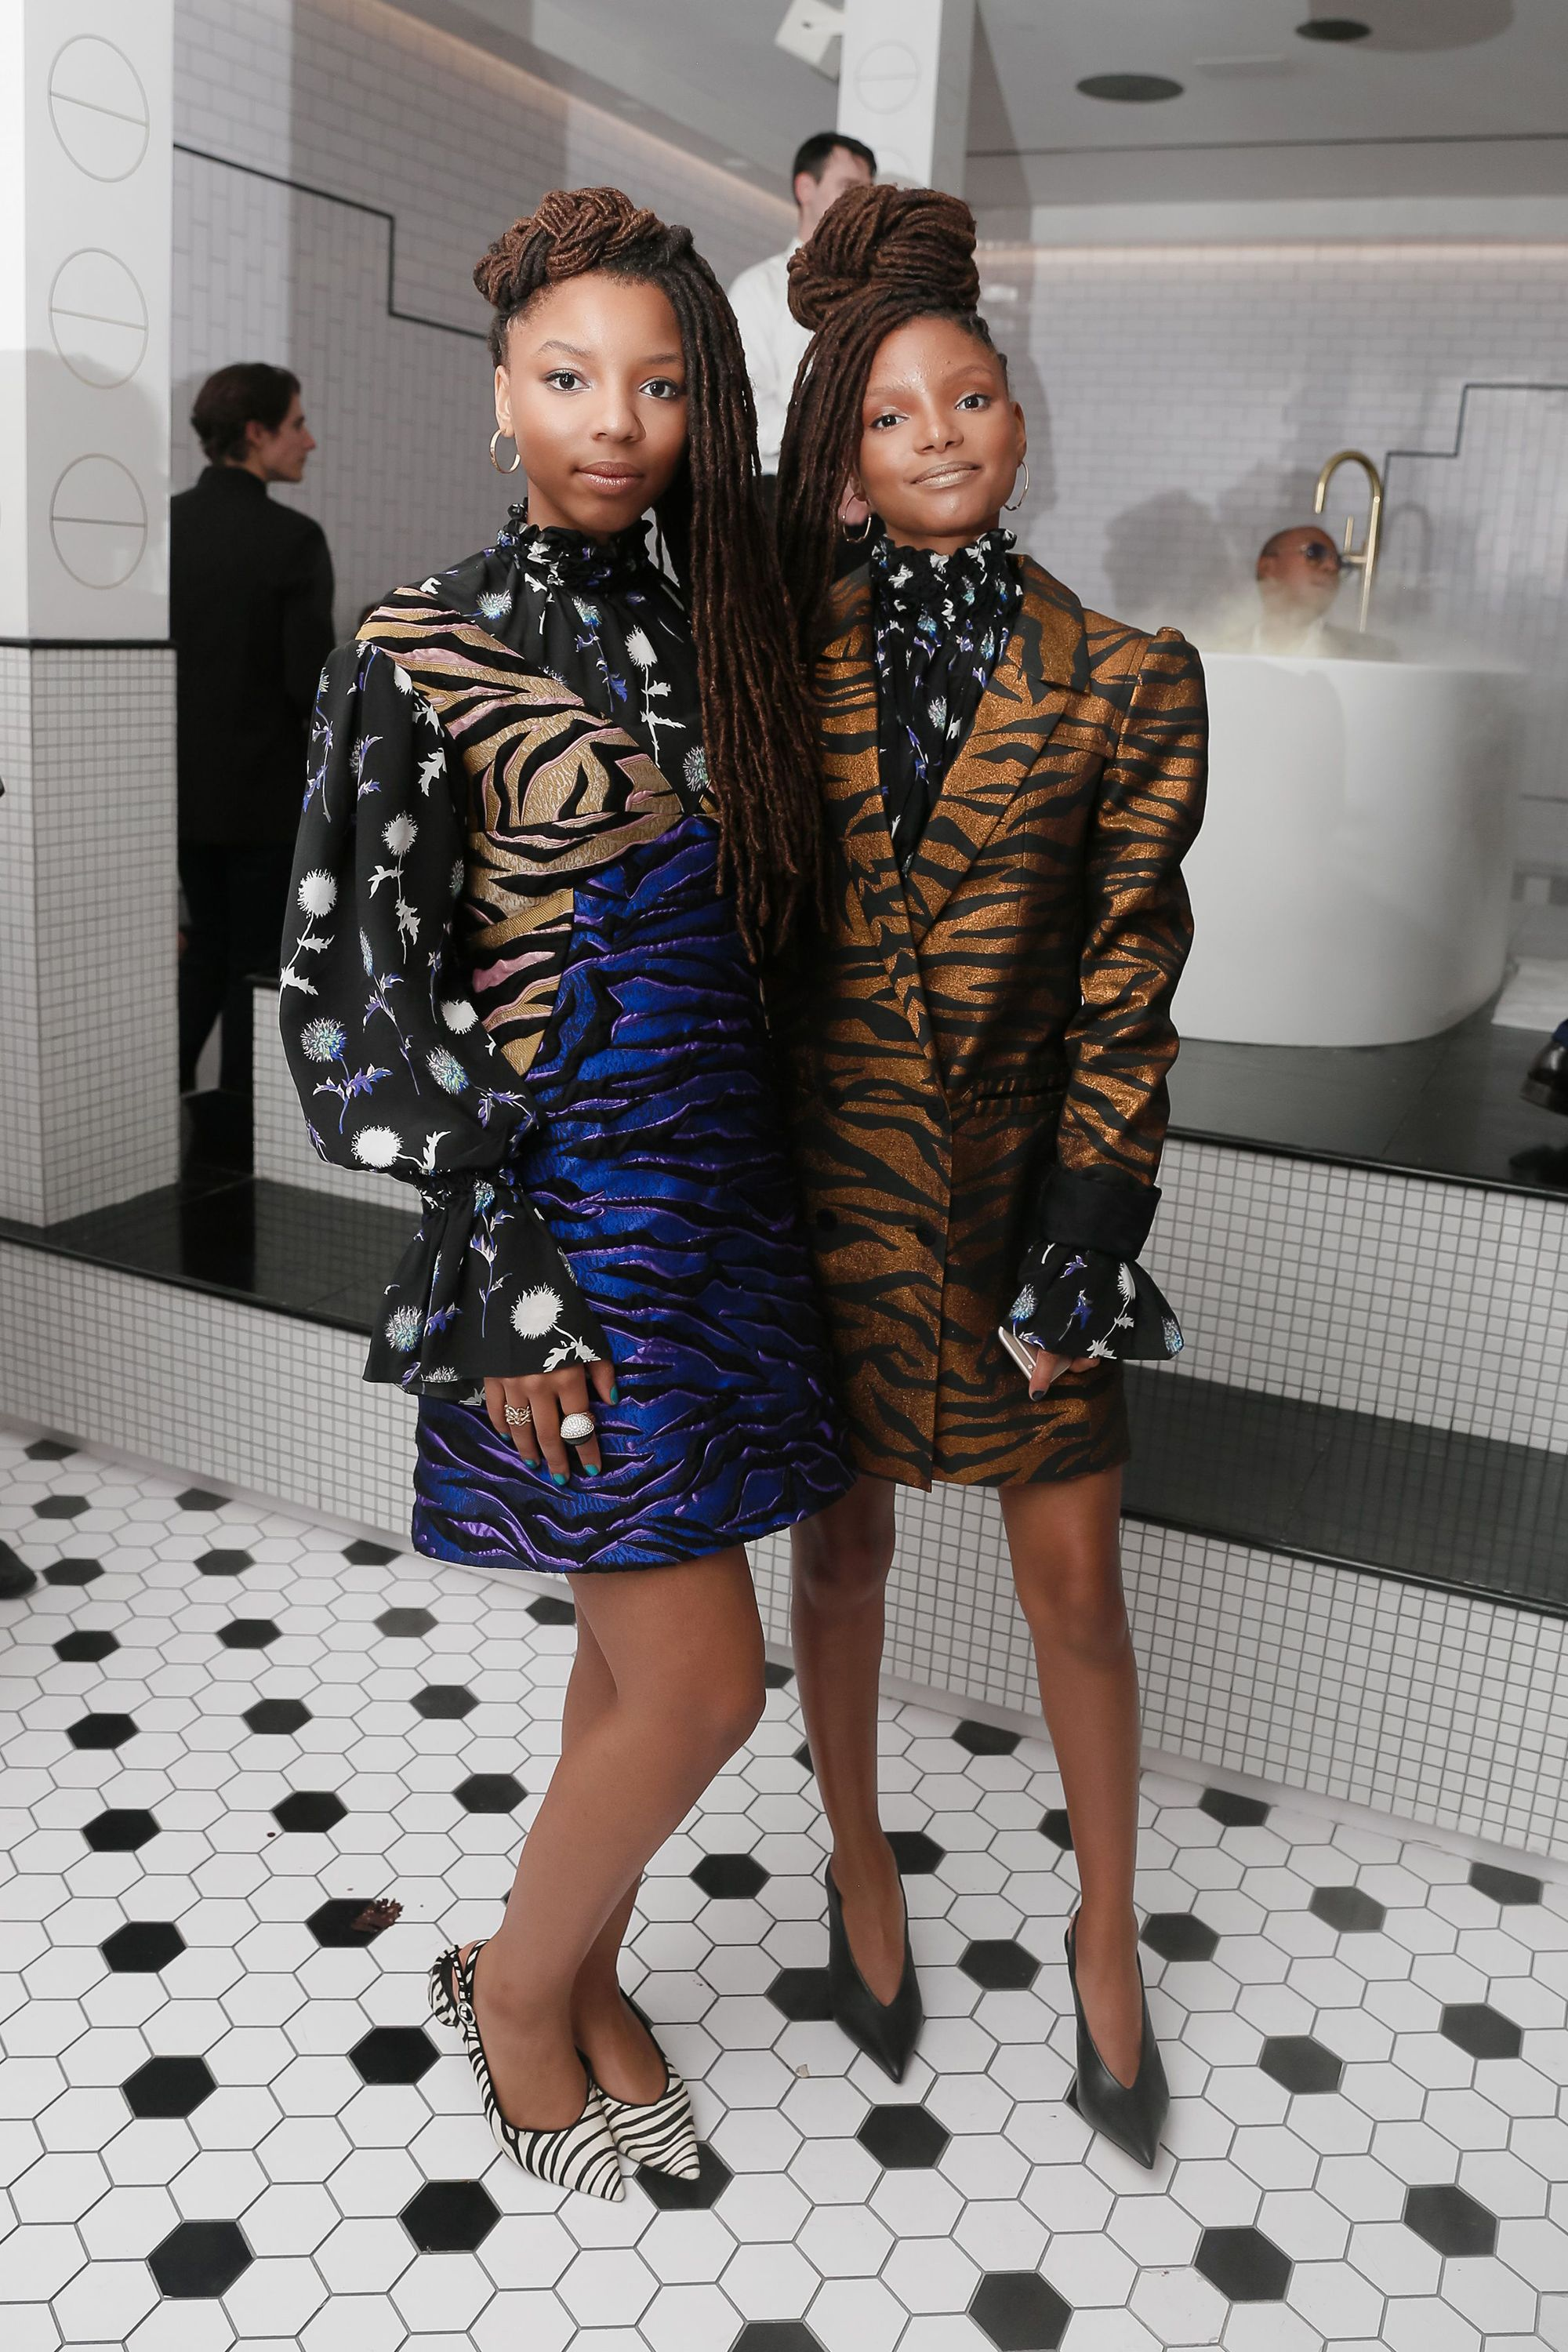 """<p><strong data-redactor-tag=""""strong"""">What</strong>: Kenzo</p><p><strong data-redactor-tag=""""strong"""">Where</strong>: Cartier Fifth Avenue Mansion Reopening</p><p><strong data-redactor-tag=""""strong"""">Why</strong>: It's not surprising that Beyonce's proteges would have a penchant for bold looks—mini style icons in the making.</p>"""